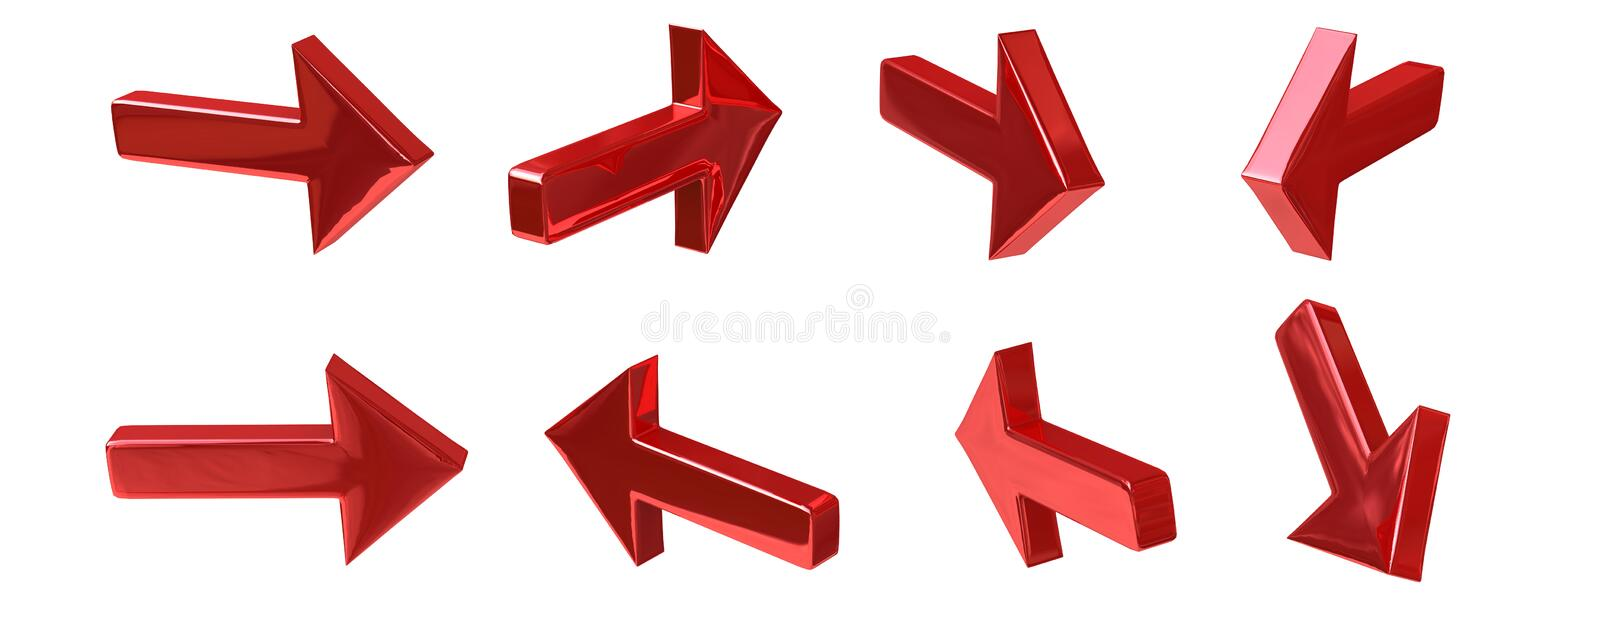 Download Red Arrow stock illustration. Image of arrow, backgrounds - 29932540